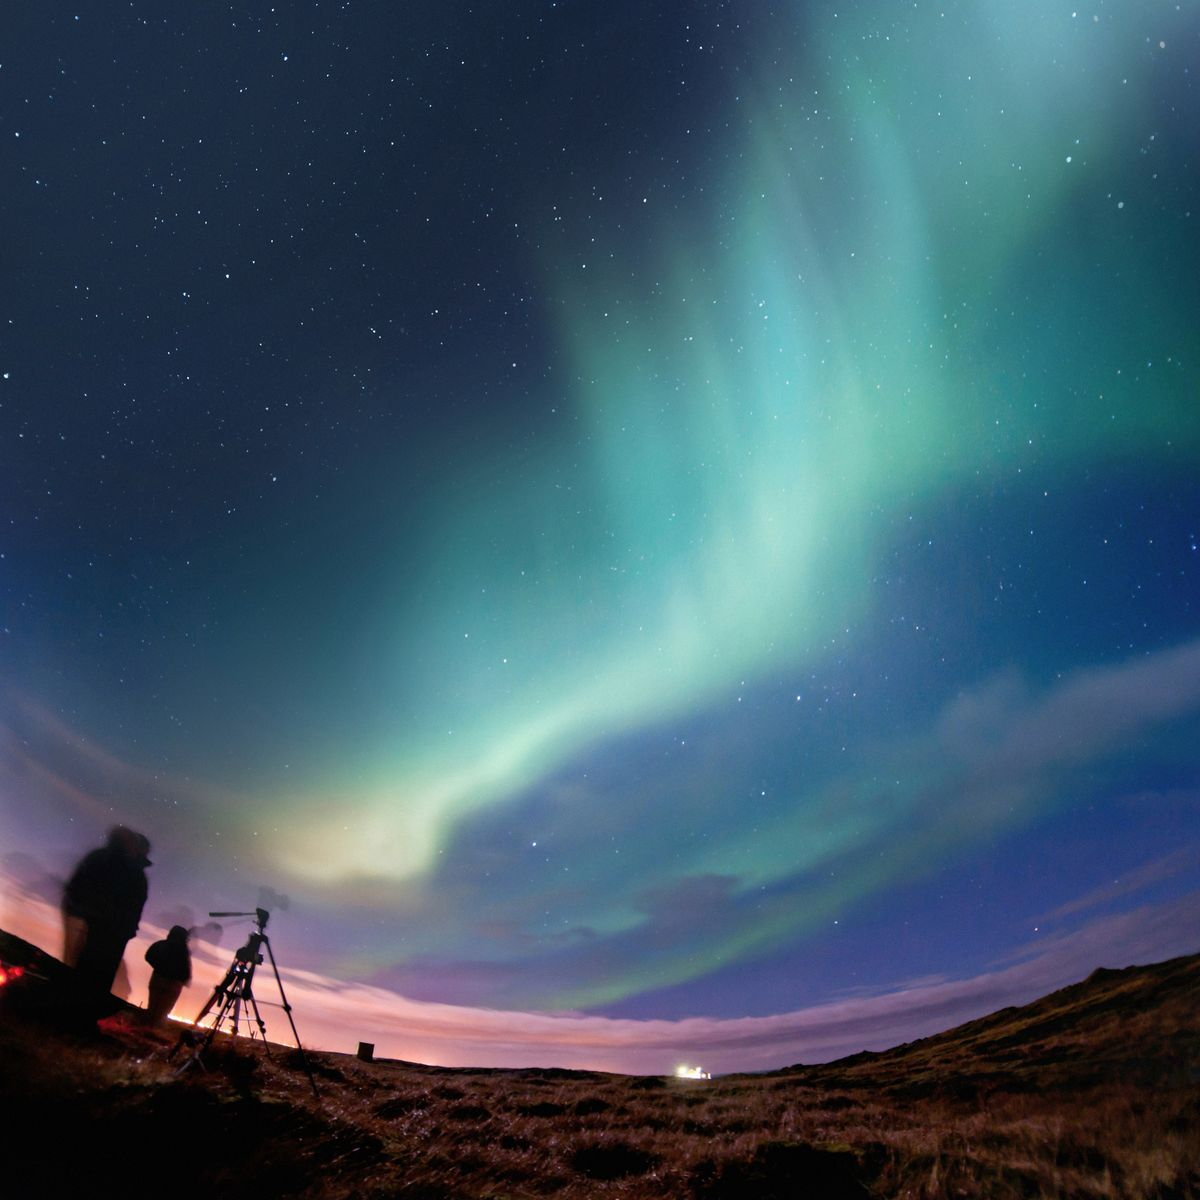 Photographers try to capture the Northern Lights